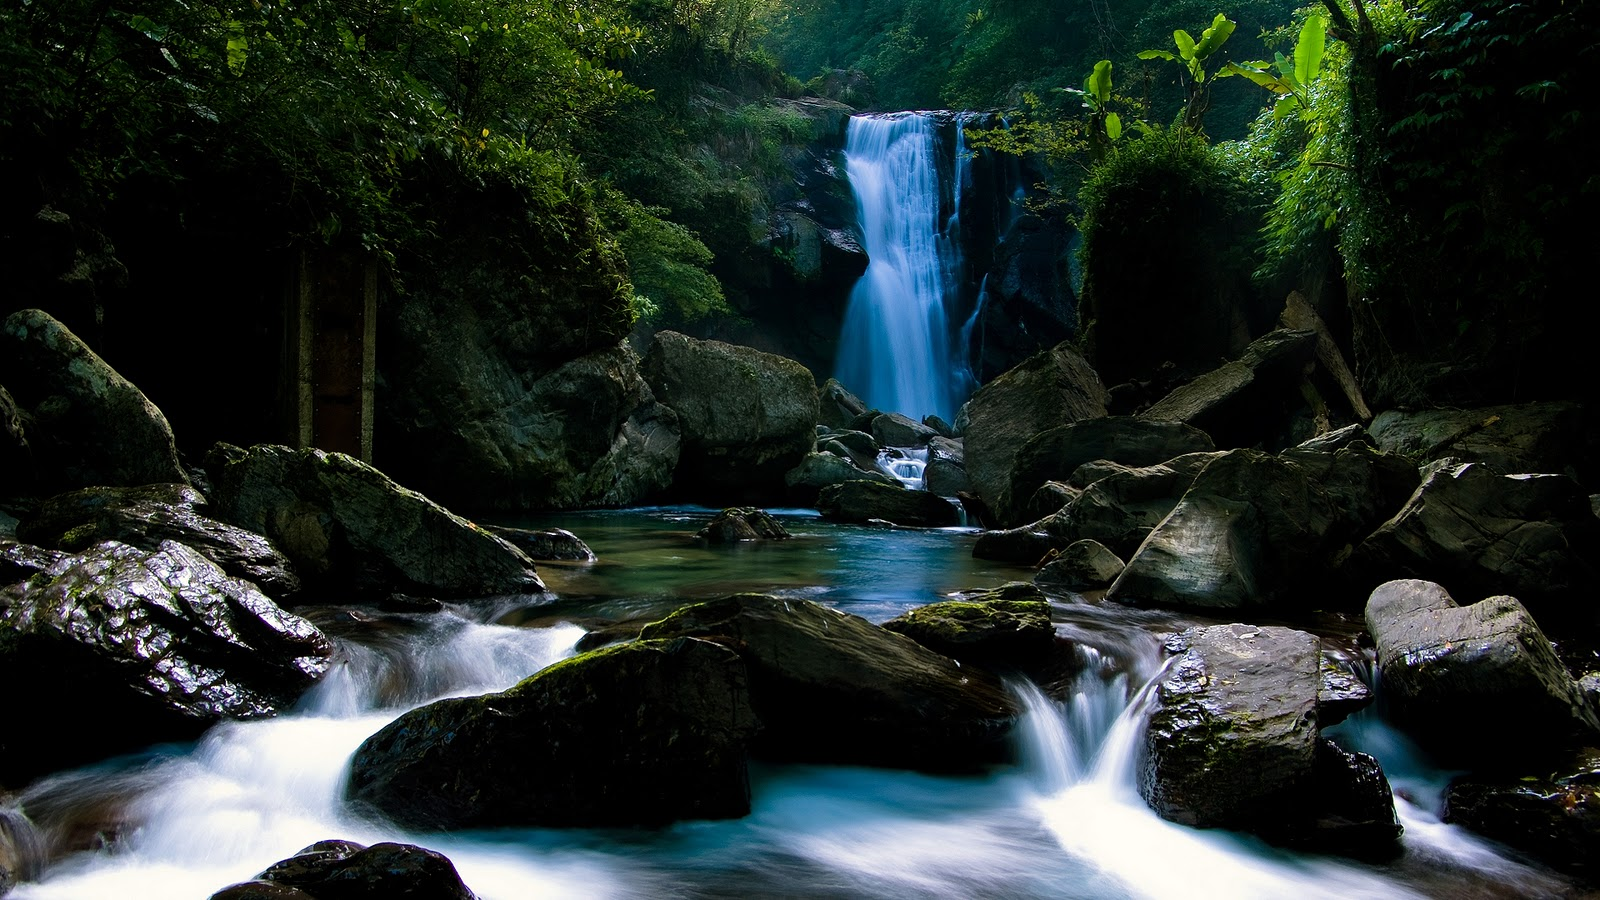 Waterfall River Stones Wild HD Wallpapers Epic Desktop Backgrounds 1600x900